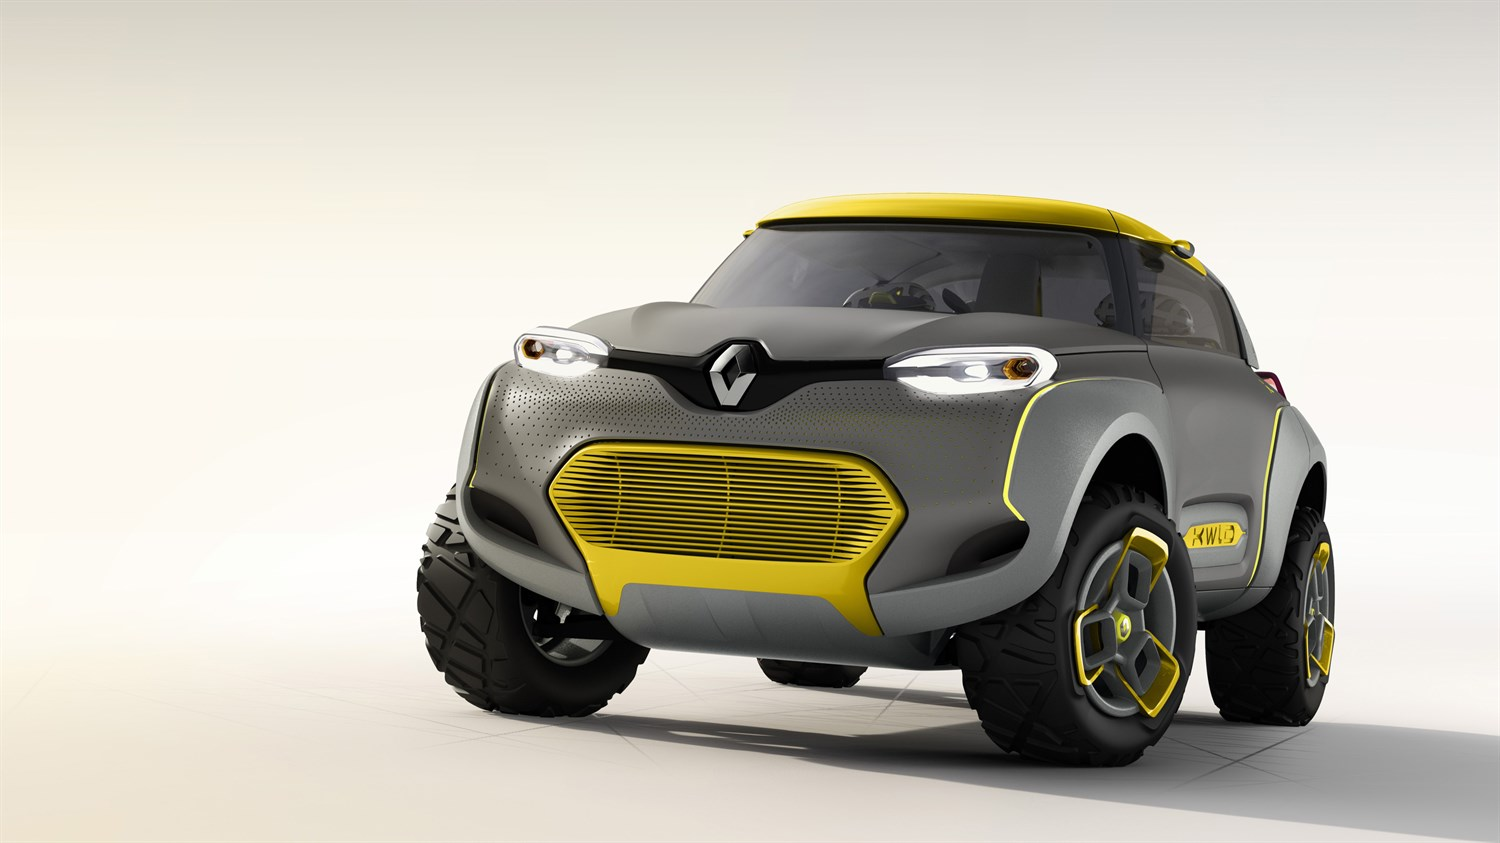 Renault KWID Concept - 3/4 vehicle front